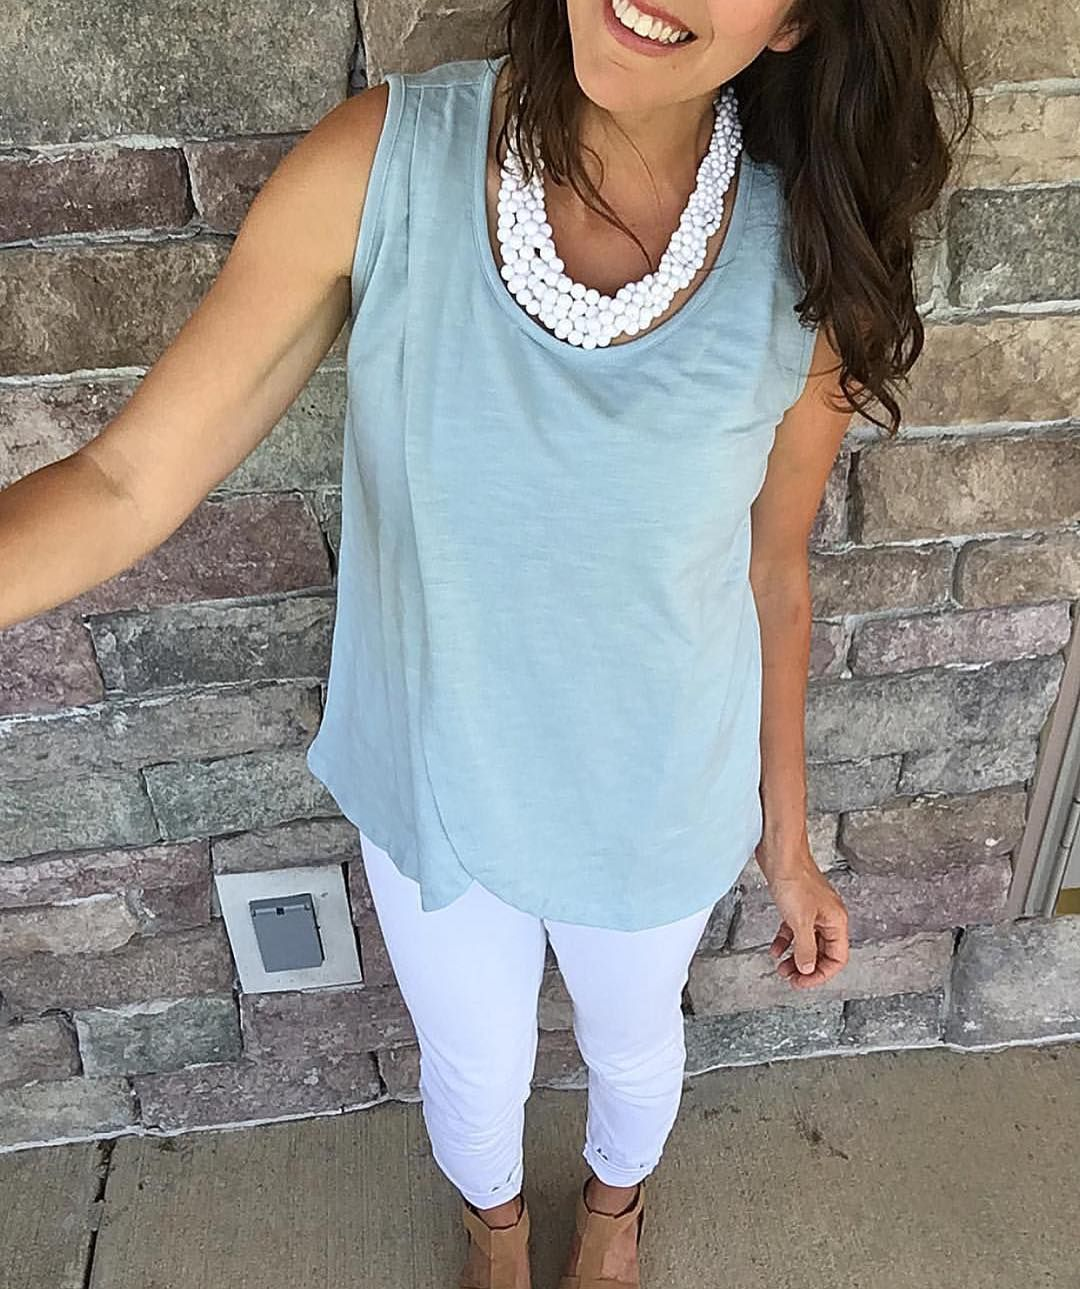 629f9af15678b The tulip front nursing top is such a freaking cute outfit! | Our ...